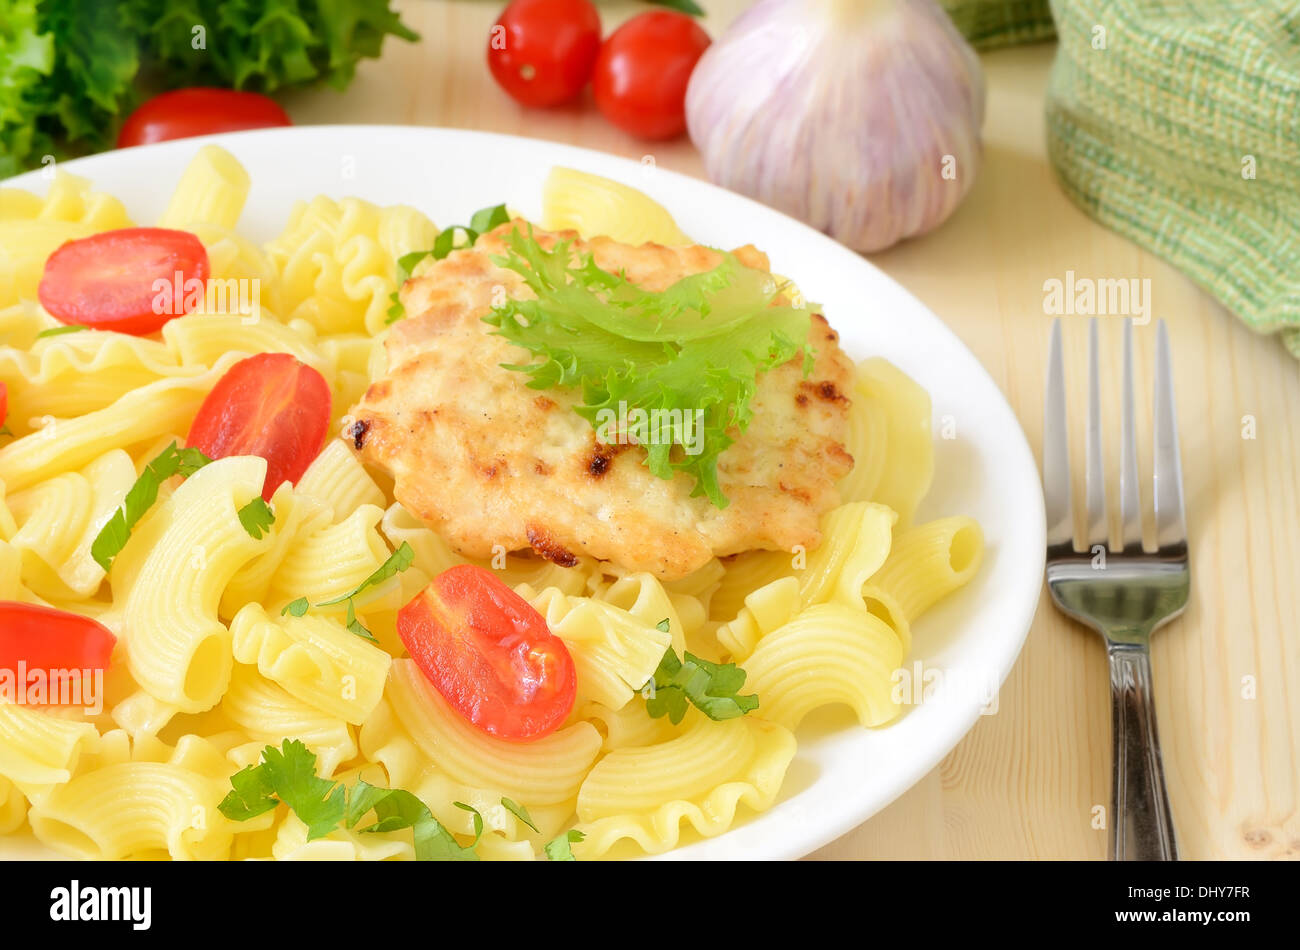 Pasta with tomatoes and chicken cutlet - Stock Image